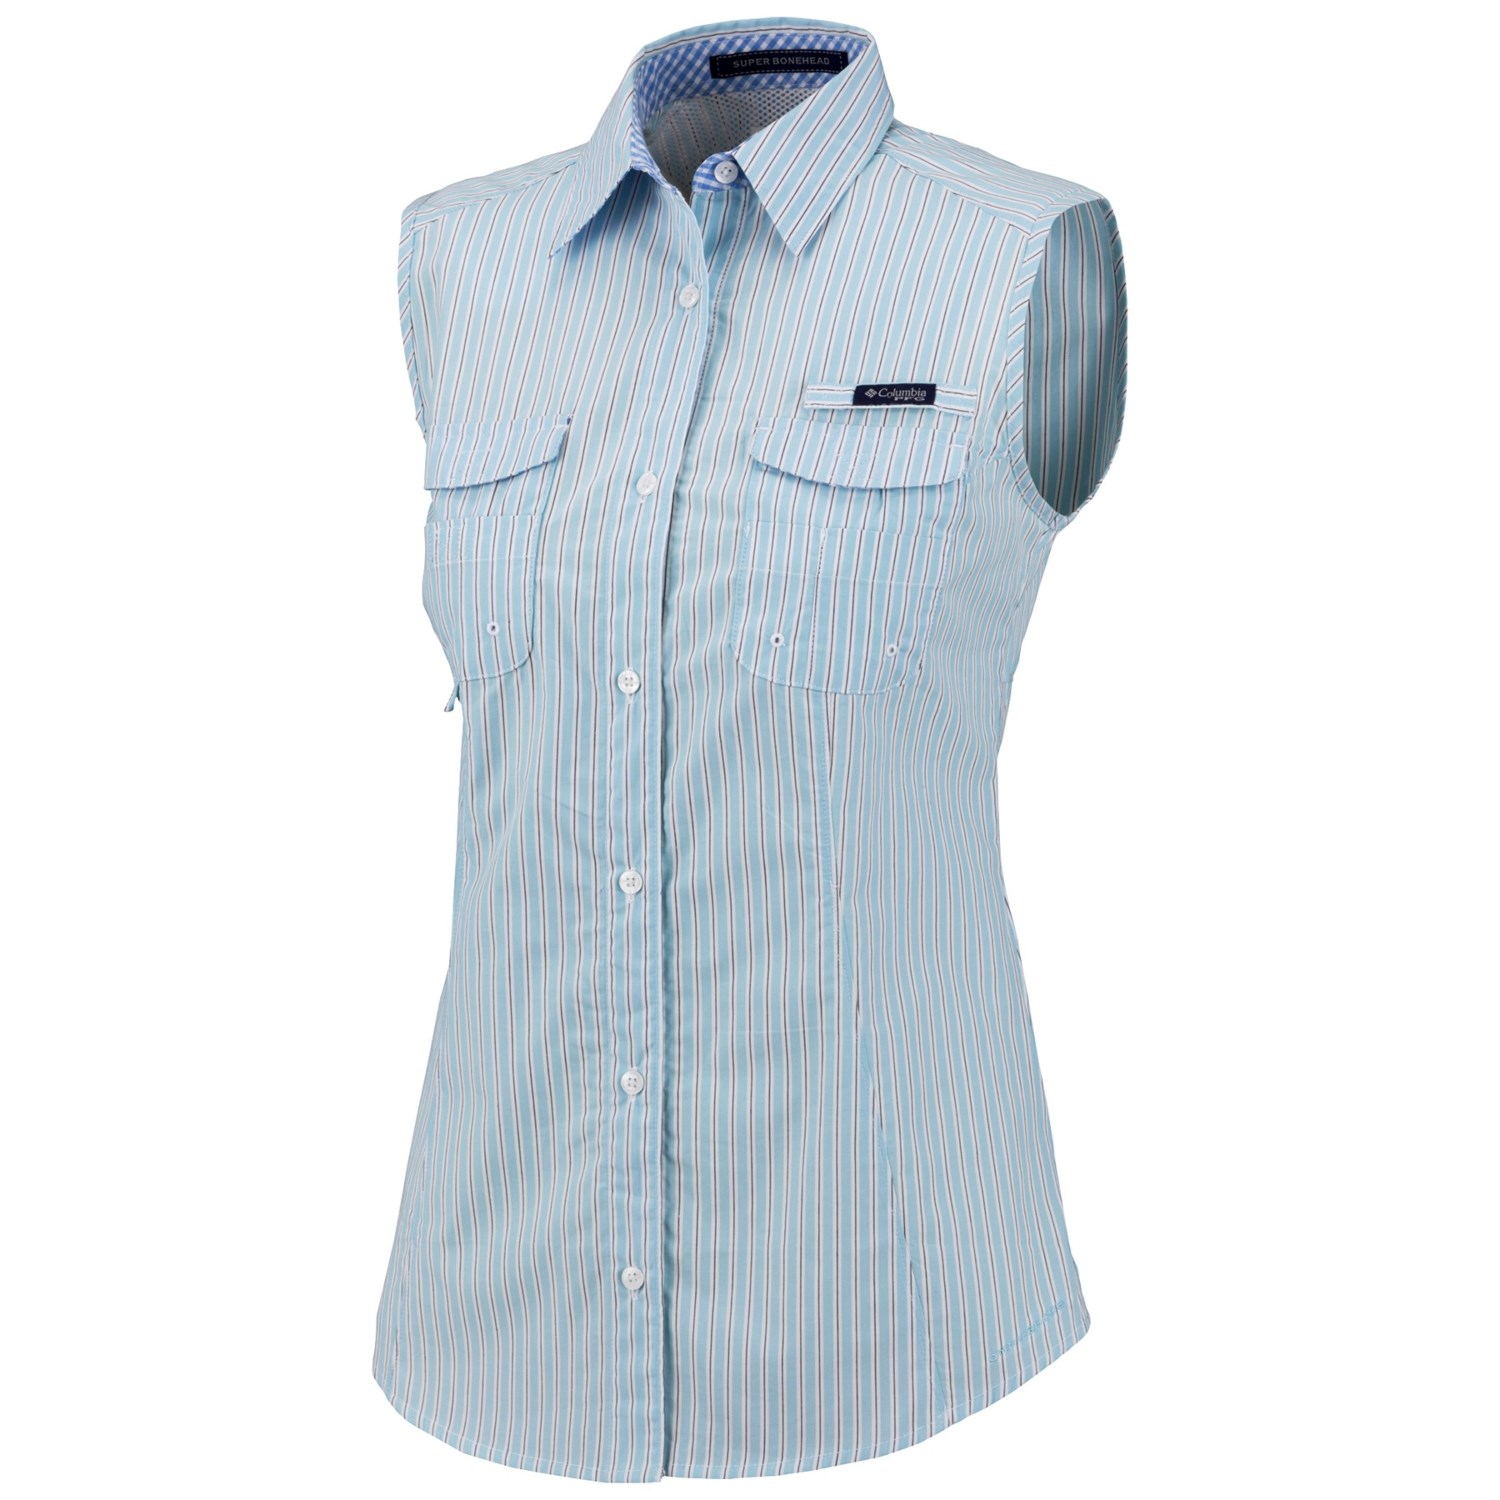 Columbia sportswear pfg super bonehead shirt for women 4524d for Columbia shirts womens pfg